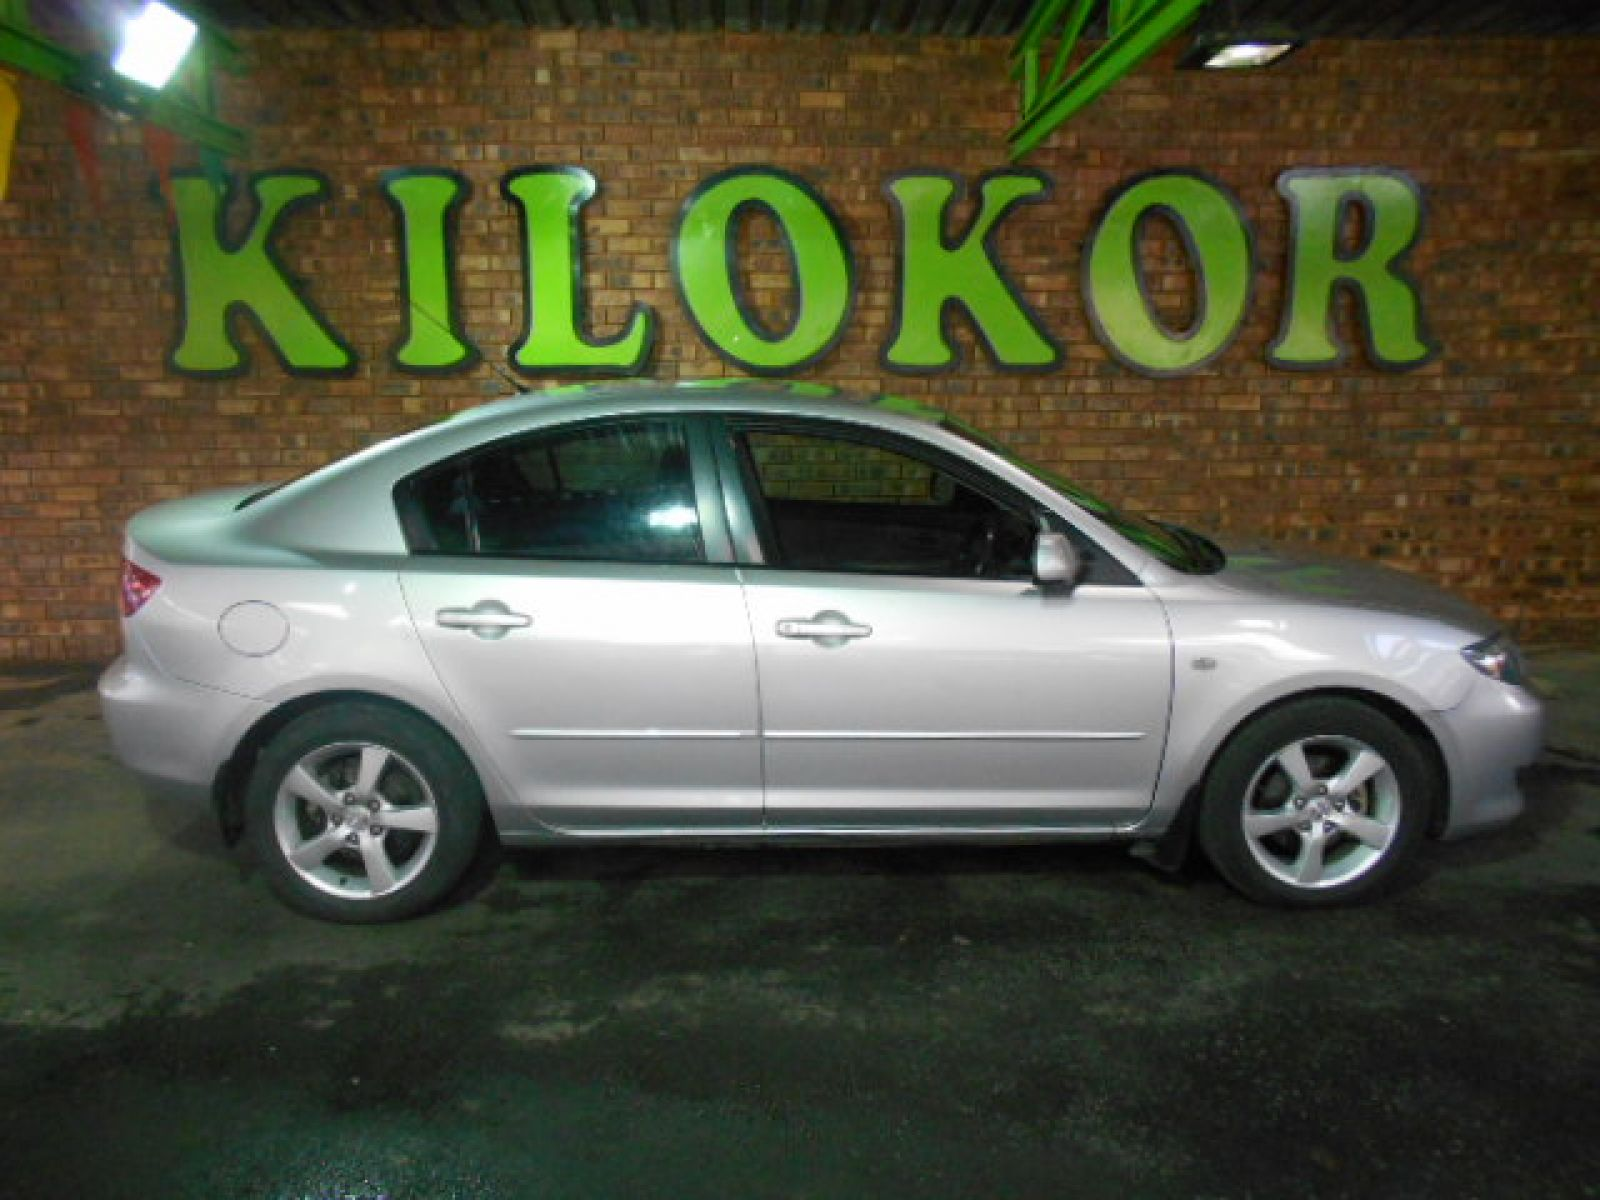 2007 Mazda 3 R 48 000 For Sale Kilokor Motors